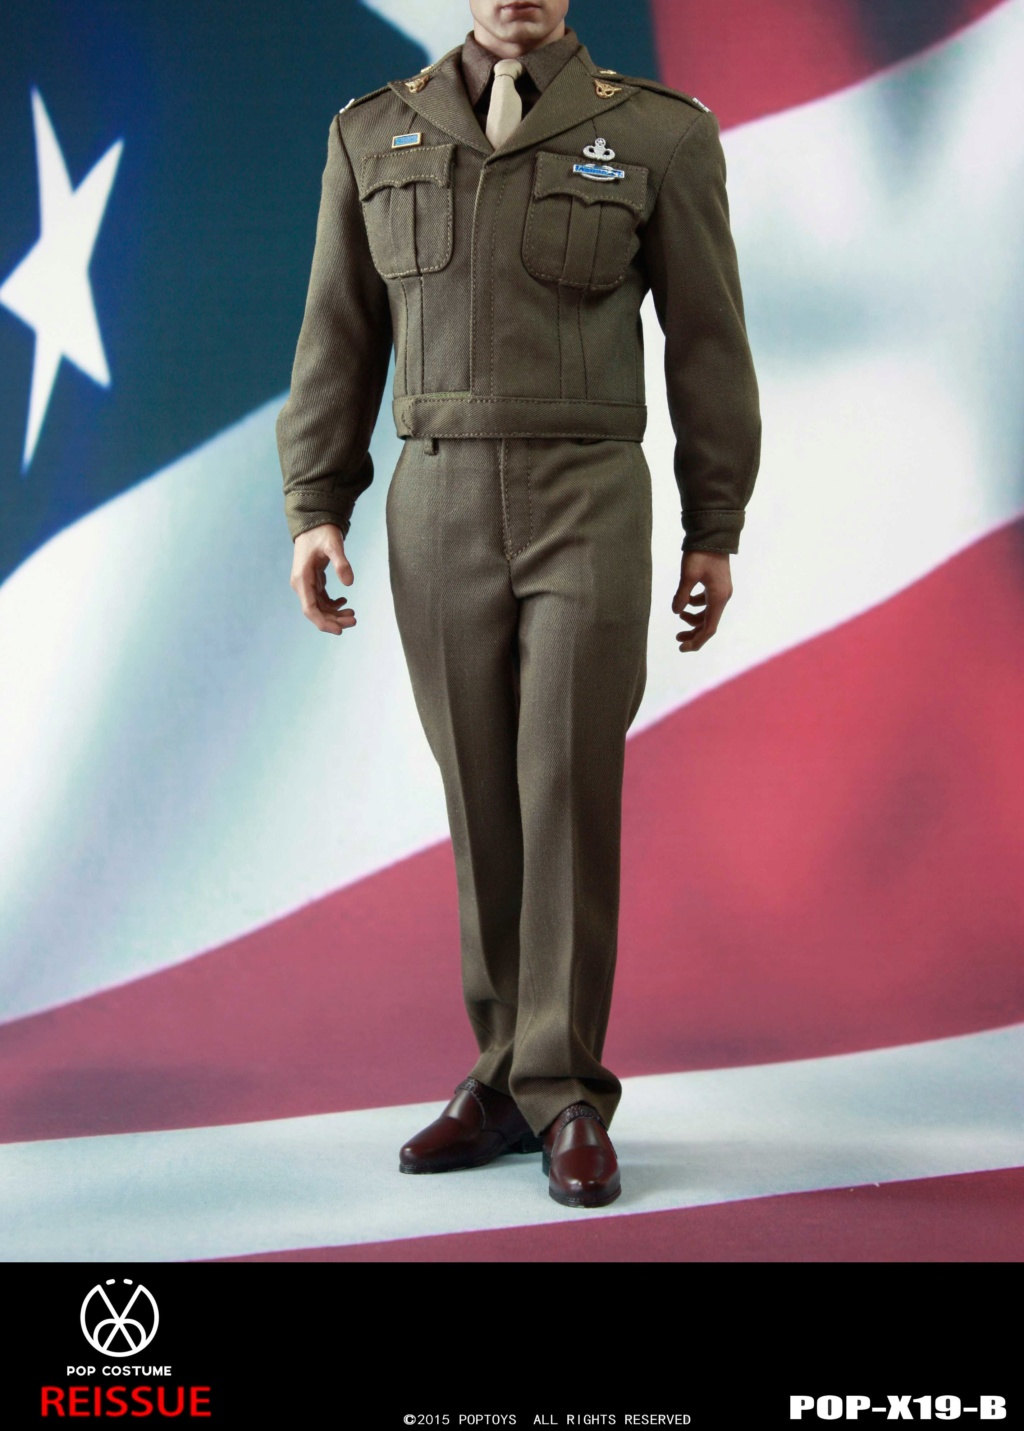 male - NEW PRODUCT: POPTOYS: 1/6 Series X19 - World War II Golden Age US Army Uniform Uniform Set - B (Reprinted in 2019) 21301810